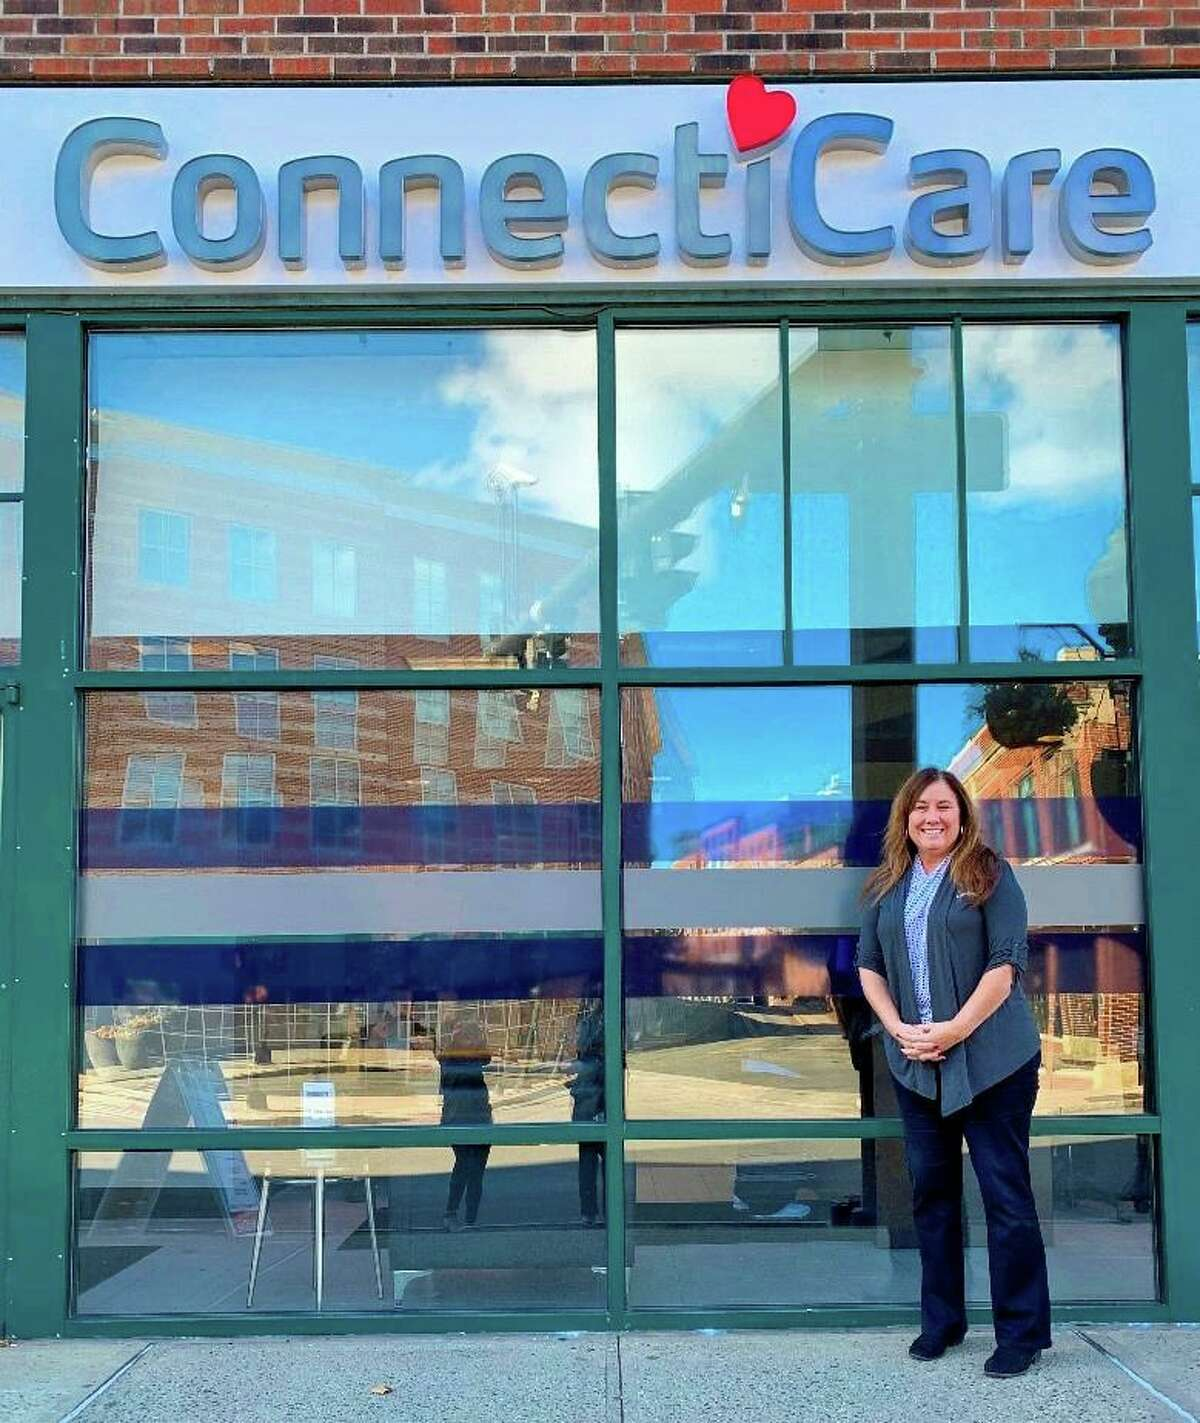 ConnectiCare's Director or Retail Operations, Laurie Blier, at the ConnectiCare center in Norwalk, Conn.